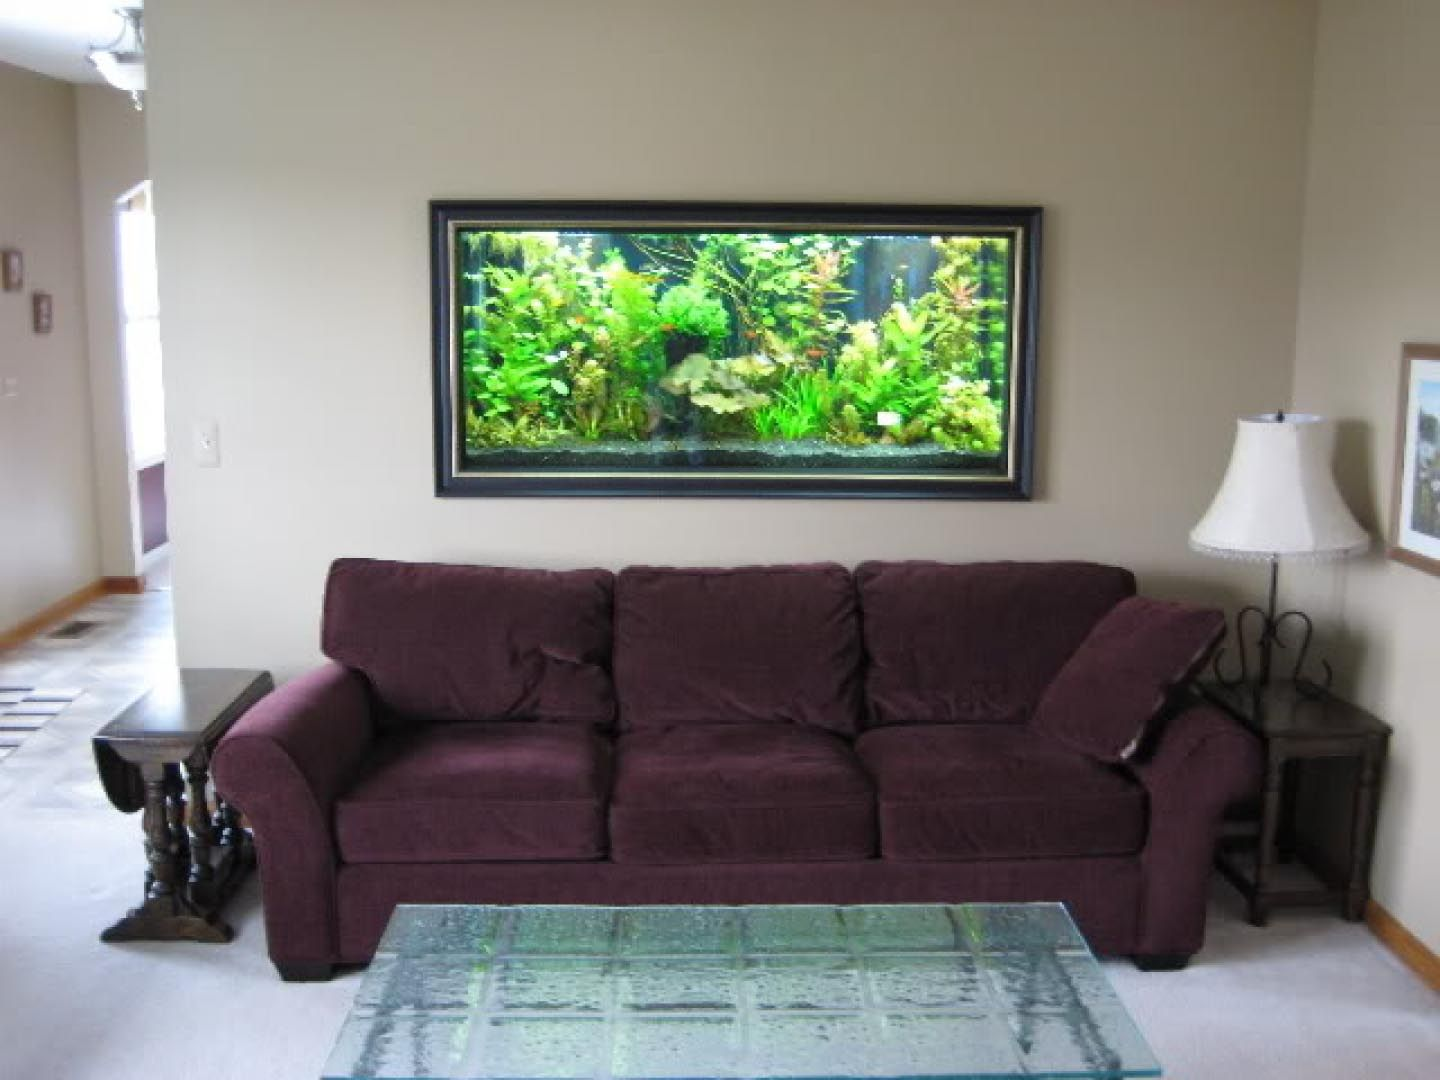 Wall Mounted Aquarium Design Wall Aquarium Aquarium